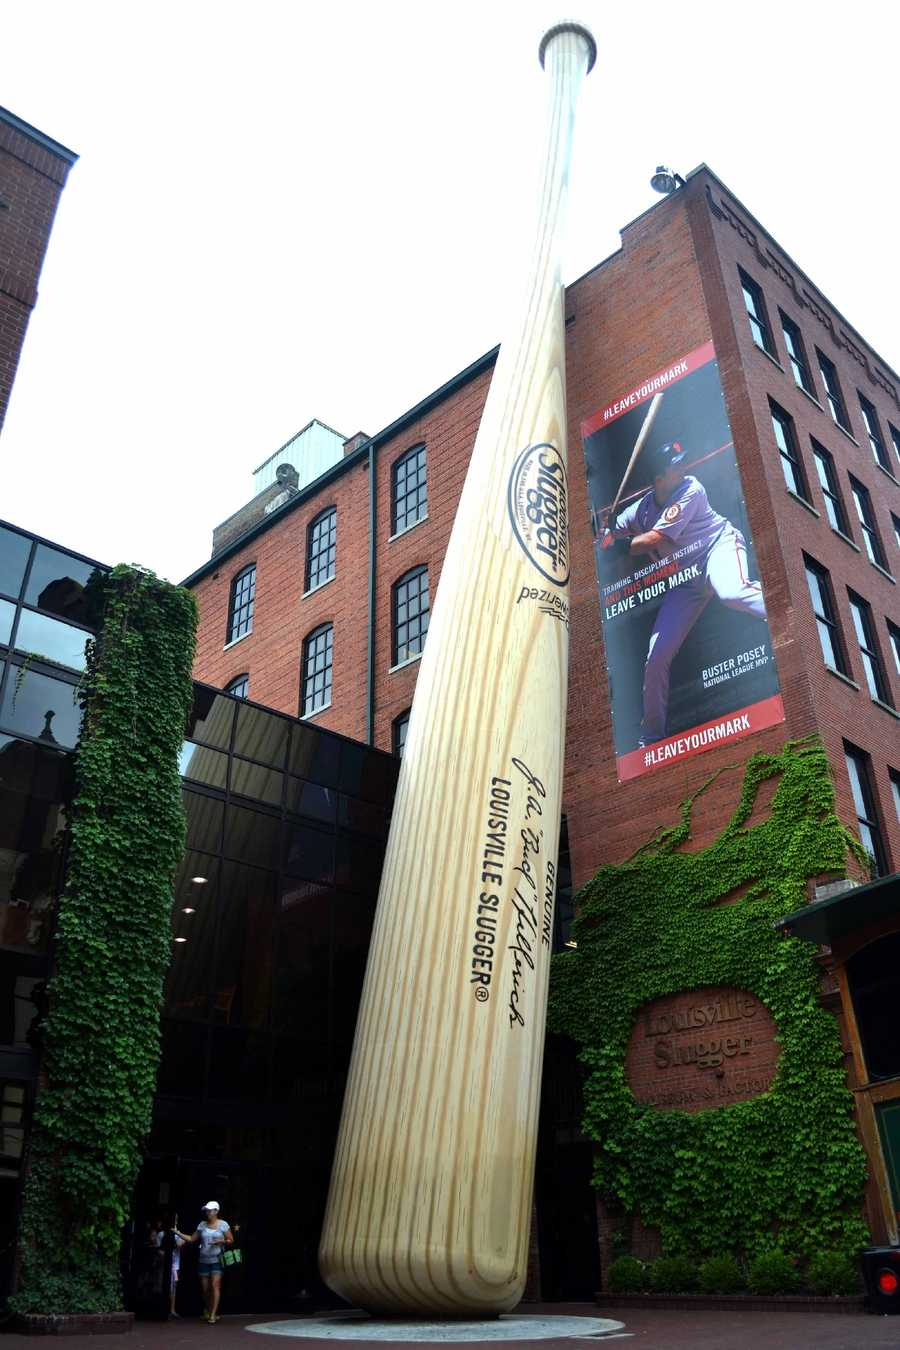 Take your picture with the giant bat: The Louisville Slugger Museum is one of the top attractions Louisville has to offer. The museum walks spectators through intricately designed, and produced bats.Location: 800 W Main StLouisville, KY 40202